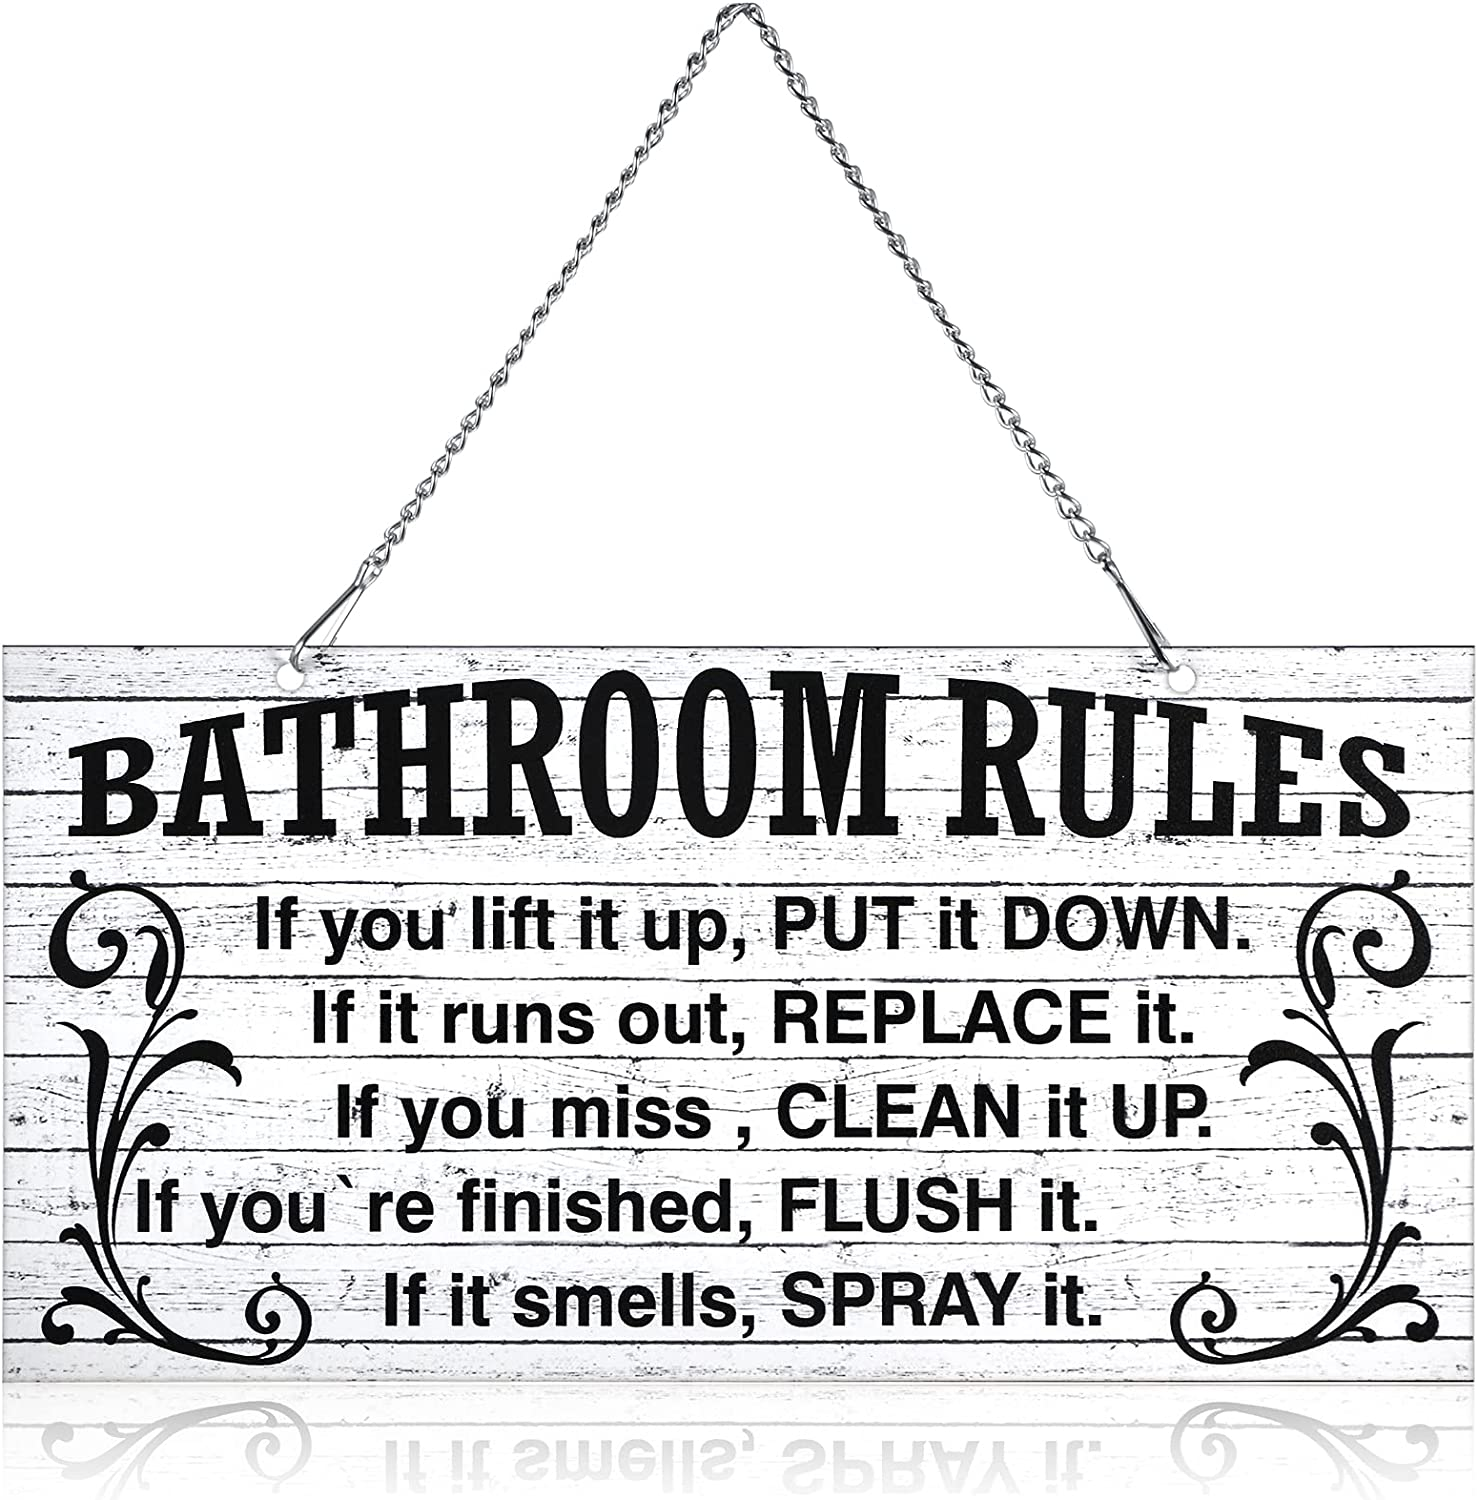 10 x 5 Inch Bathroom Rules Decor Metal Hanging Rustic Bathroom Rules Door Wall Plaque Decor Sign Vintage Bath Metal Wall Art, If It Smells Spray It. Sign Plaque Wall Decoration (White and Black)